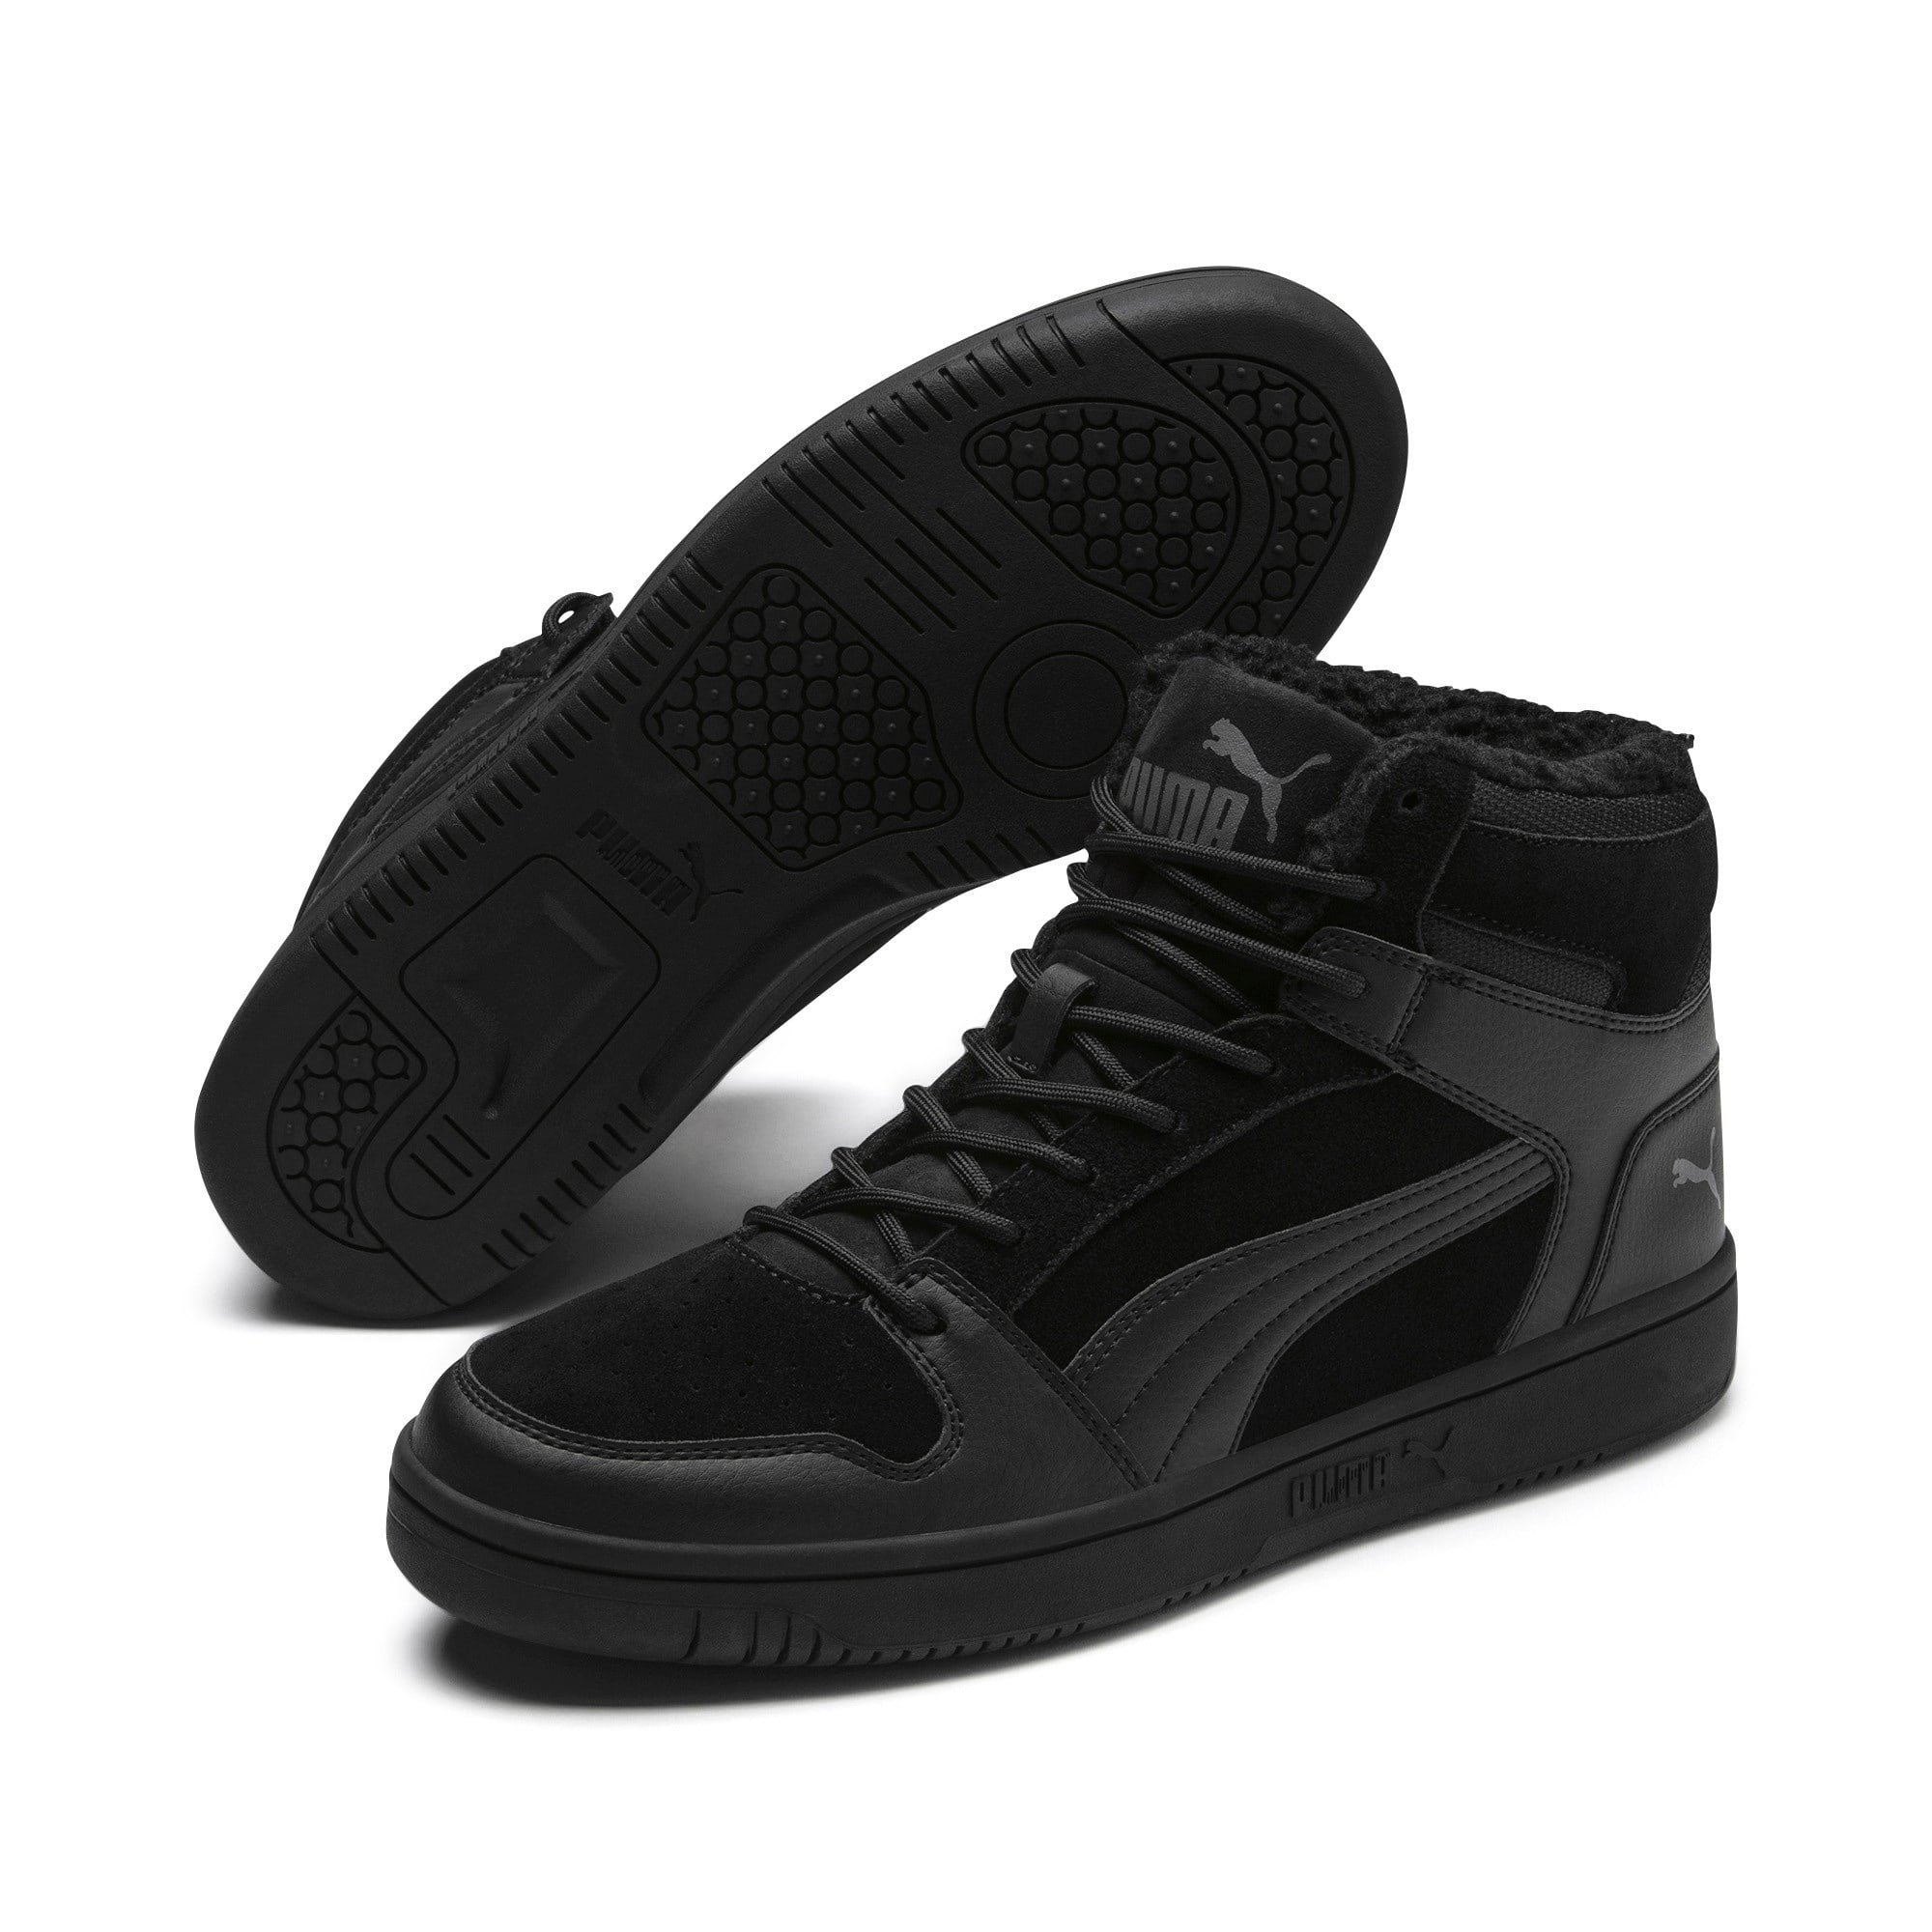 Thumbnail 3 of Rebound Lay Up SD Fur sportschoenen, Puma Black-CASTLEROCK, medium